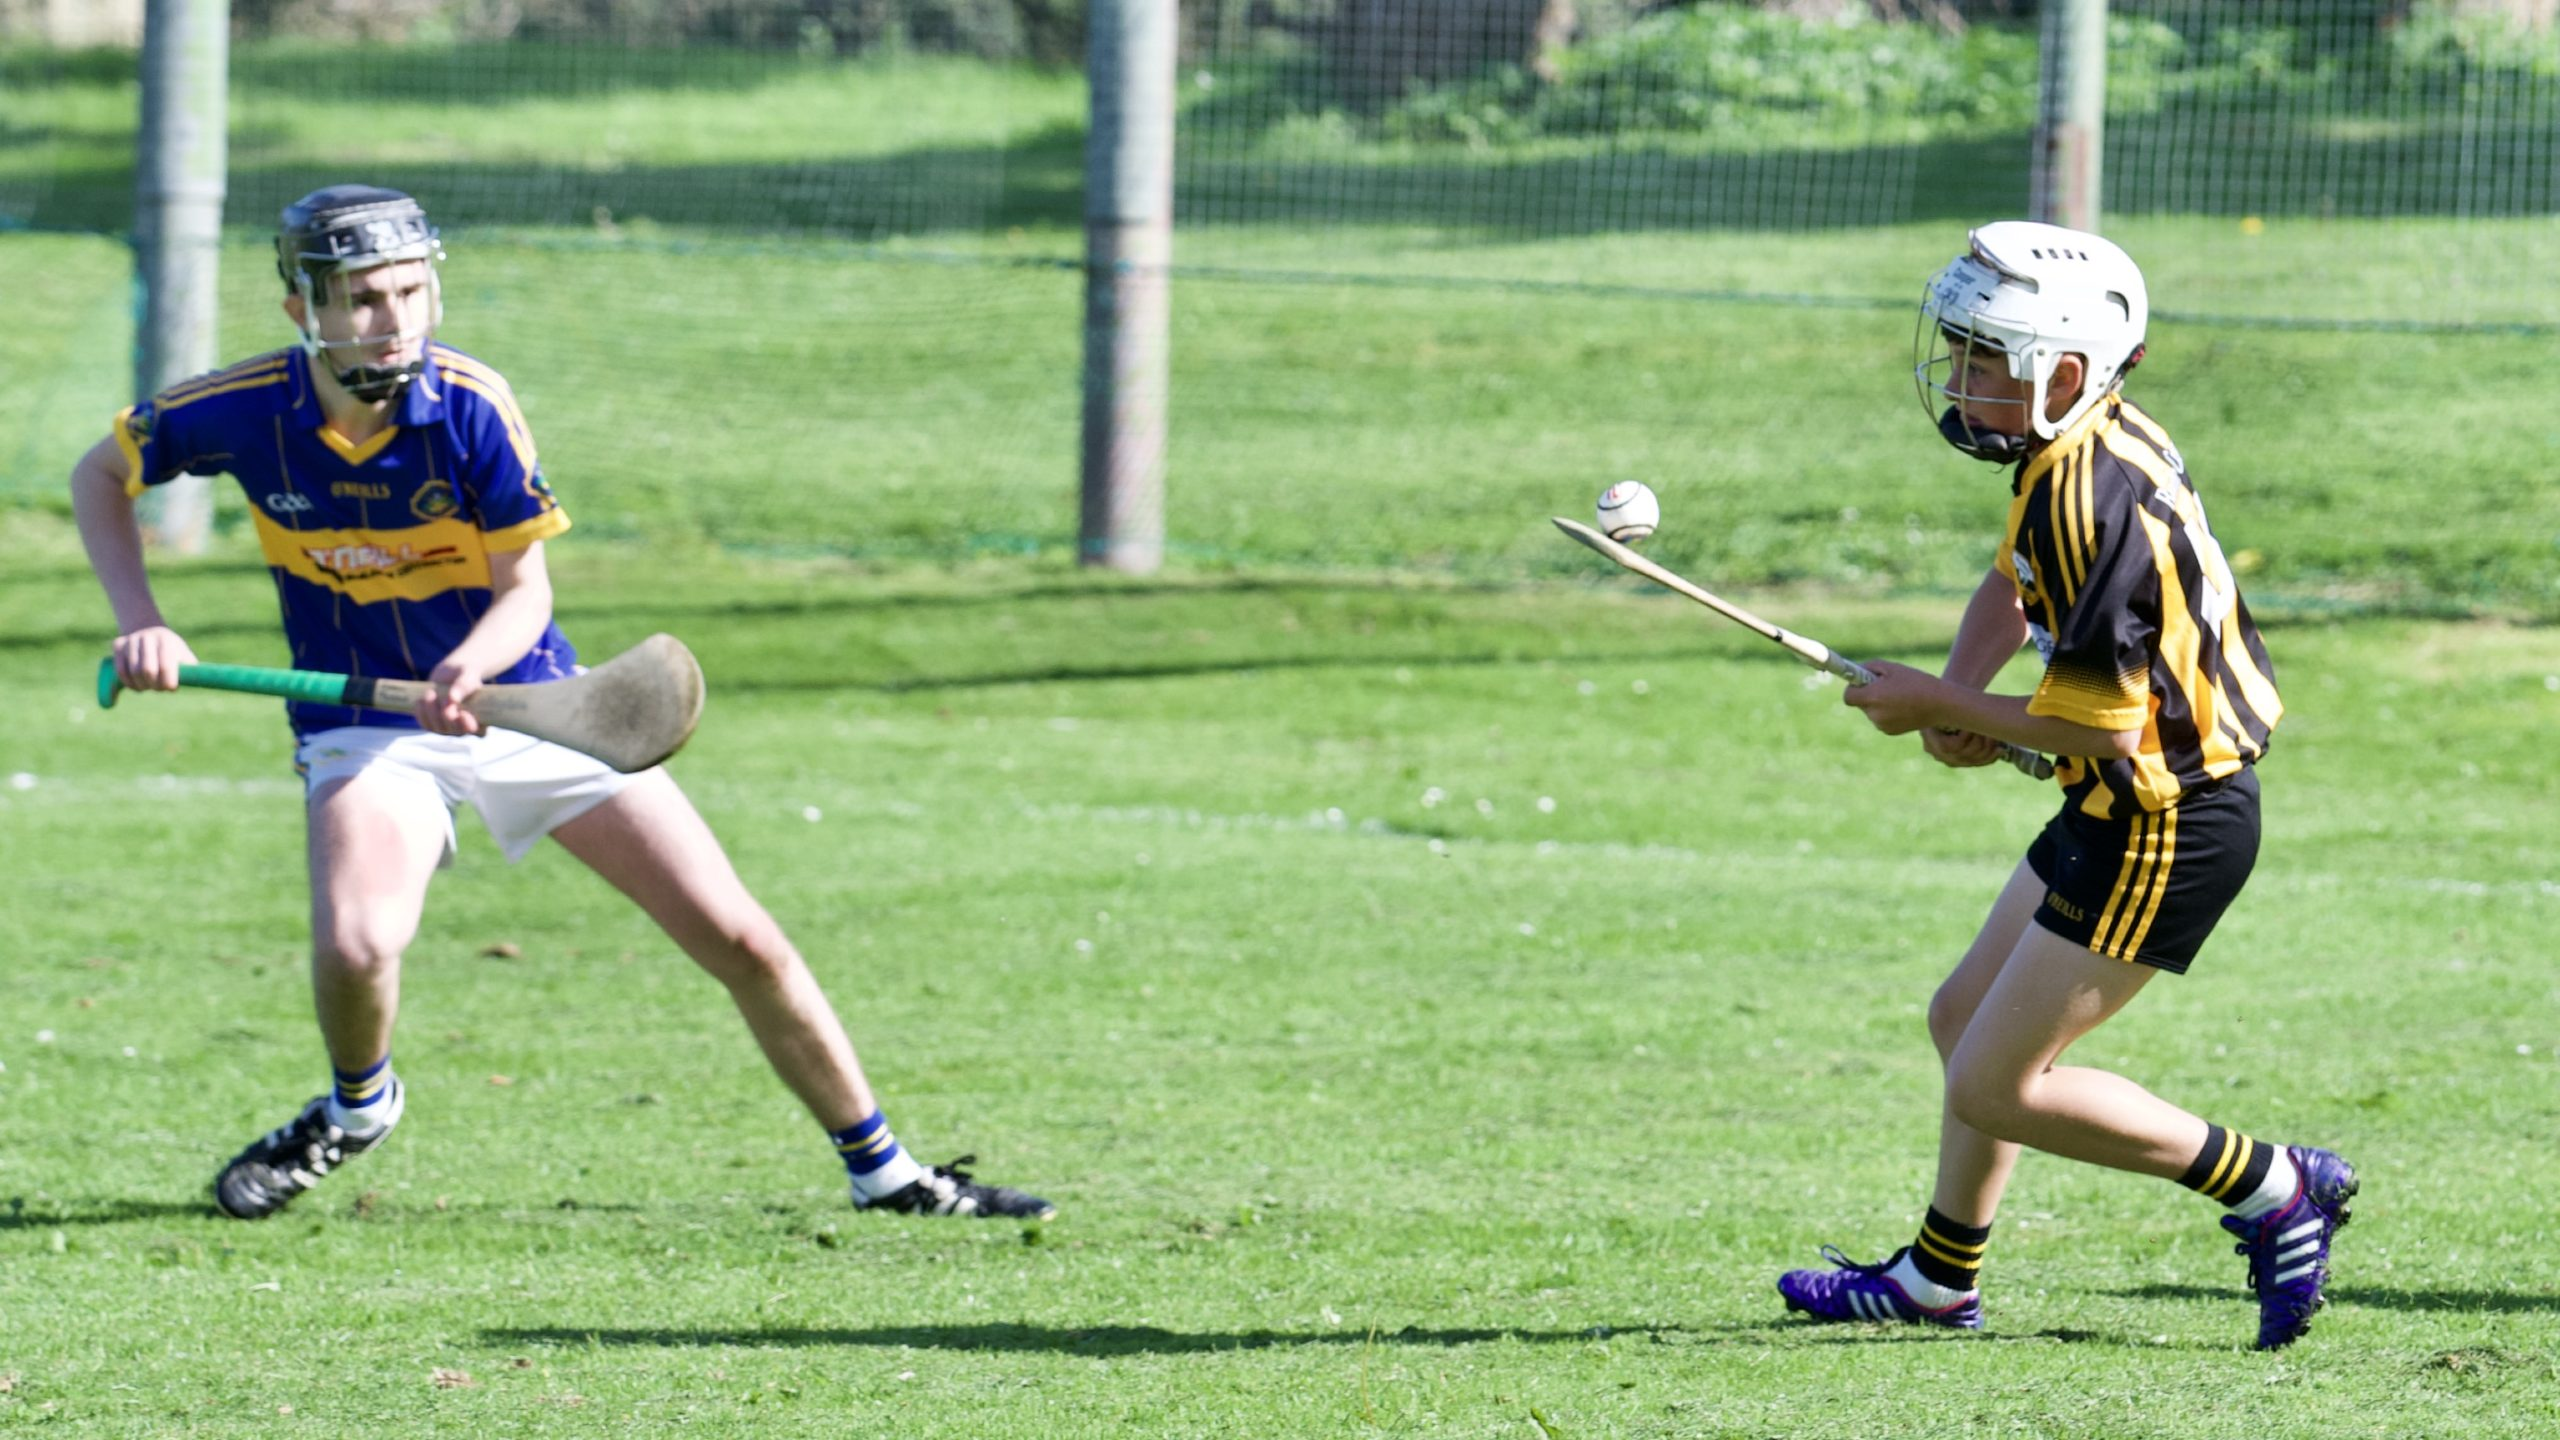 U15 hurlers enjoy their Championship match on a sun drenched St. Patrick's Park, Portaferry